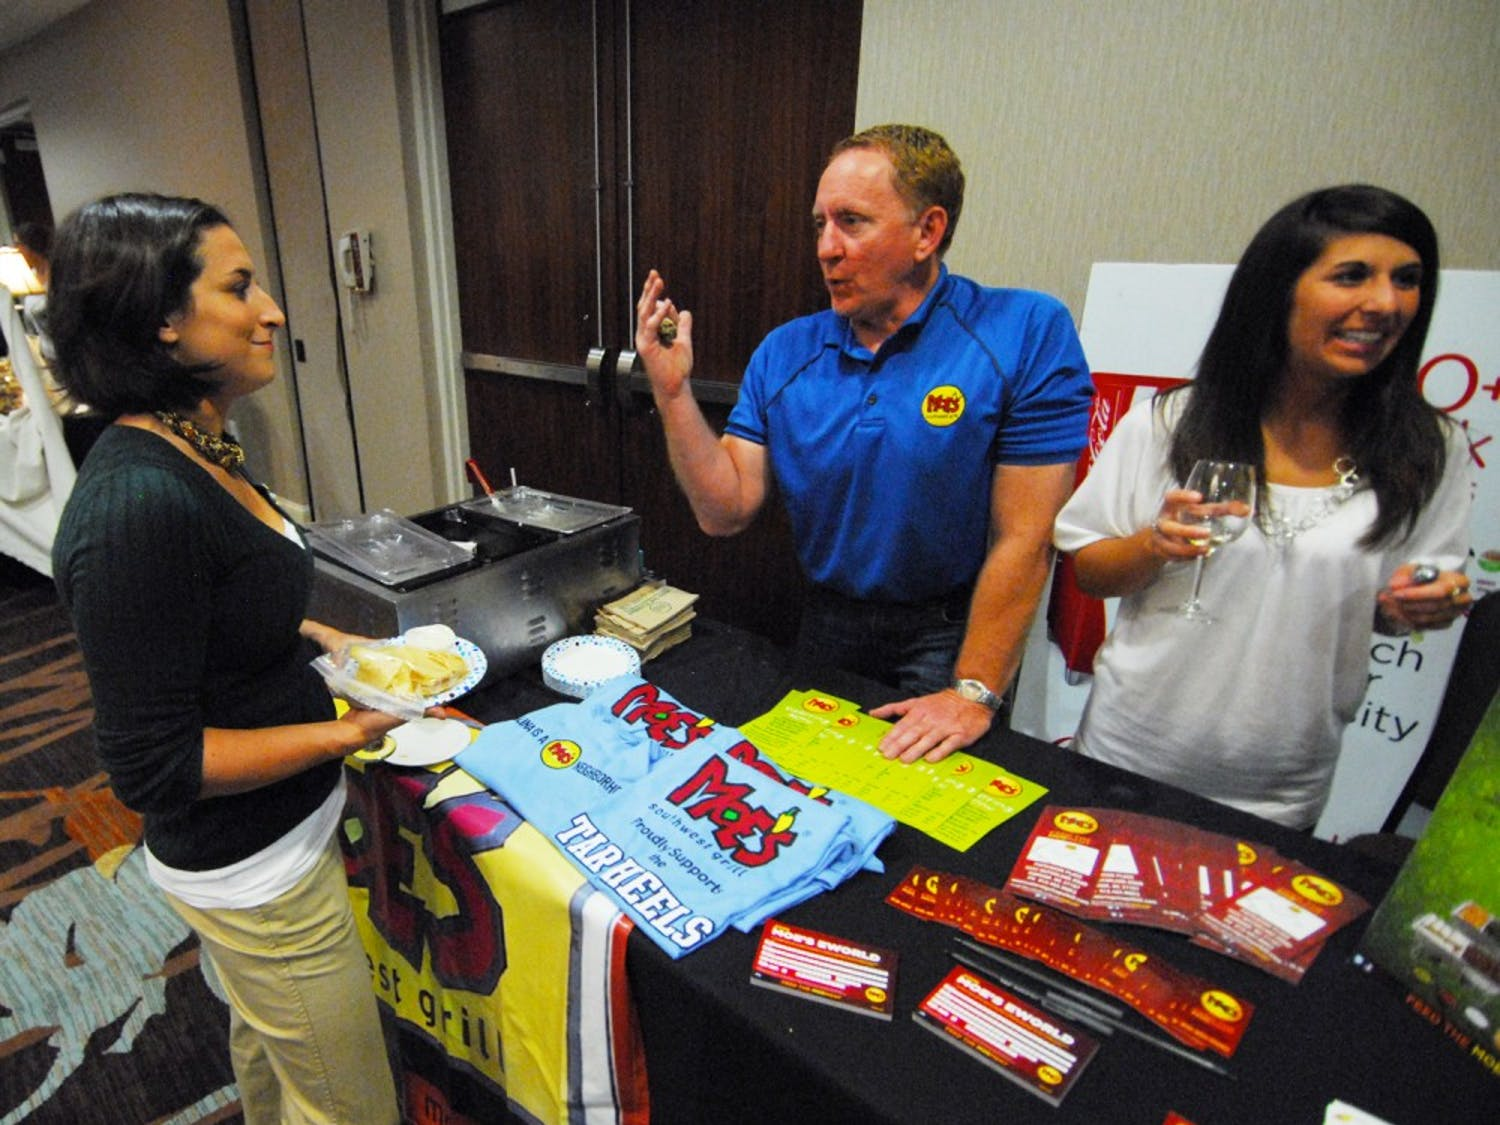 The Chapel Hill Chamber of Commerce Expo was held at the Sheraton Hotel in Chapel Hill. New Chamber members as well as returning members showcased their businesses. Kevin Rutledge and Becca Thomas of Moe's Southwest Grill in Durham share chips and queso with Samantha Handler of Aflac. Both companies were in attendance at the Chapel Hill Chamber of Commerce Expo.